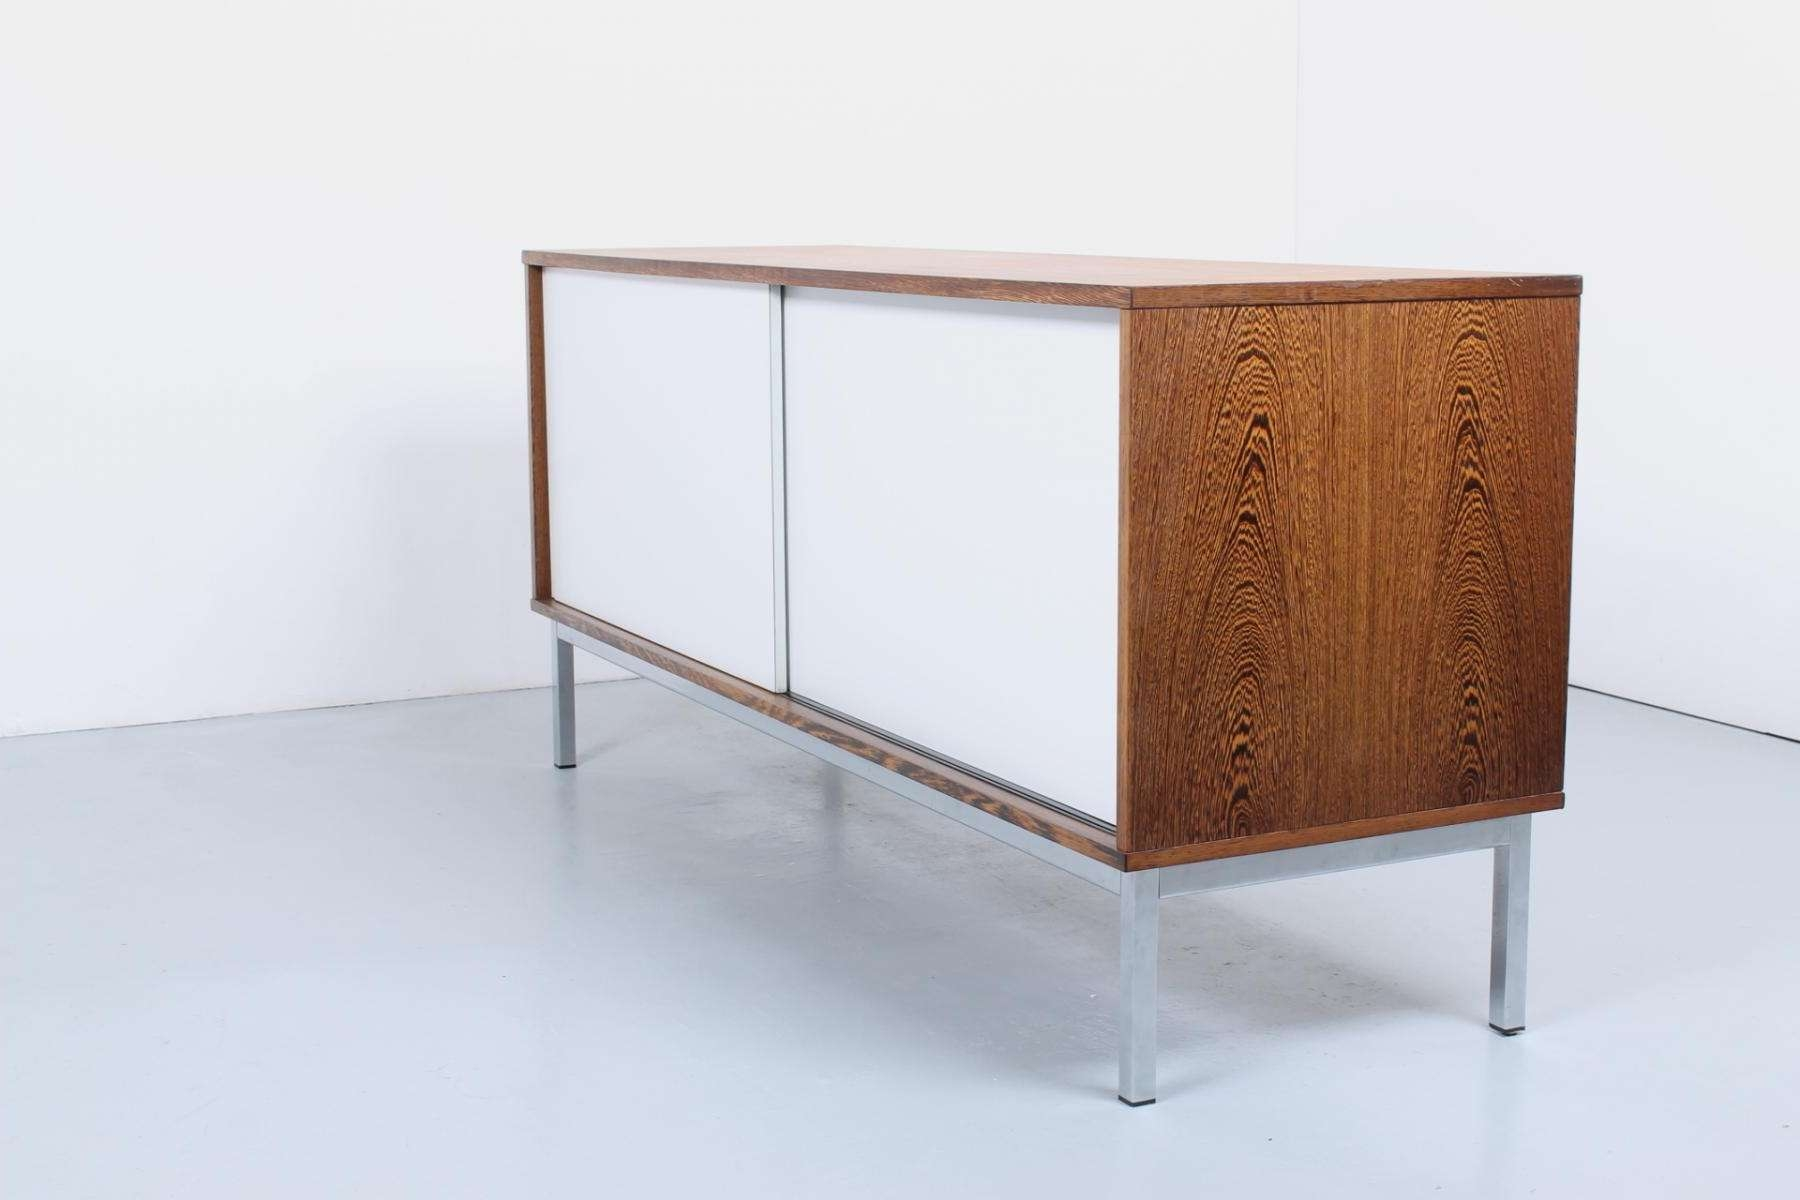 Vintage Kw 87 Sideboard In Wenge Veneer And White Formica Pertaining To Wenge Sideboards (Gallery 6 of 20)